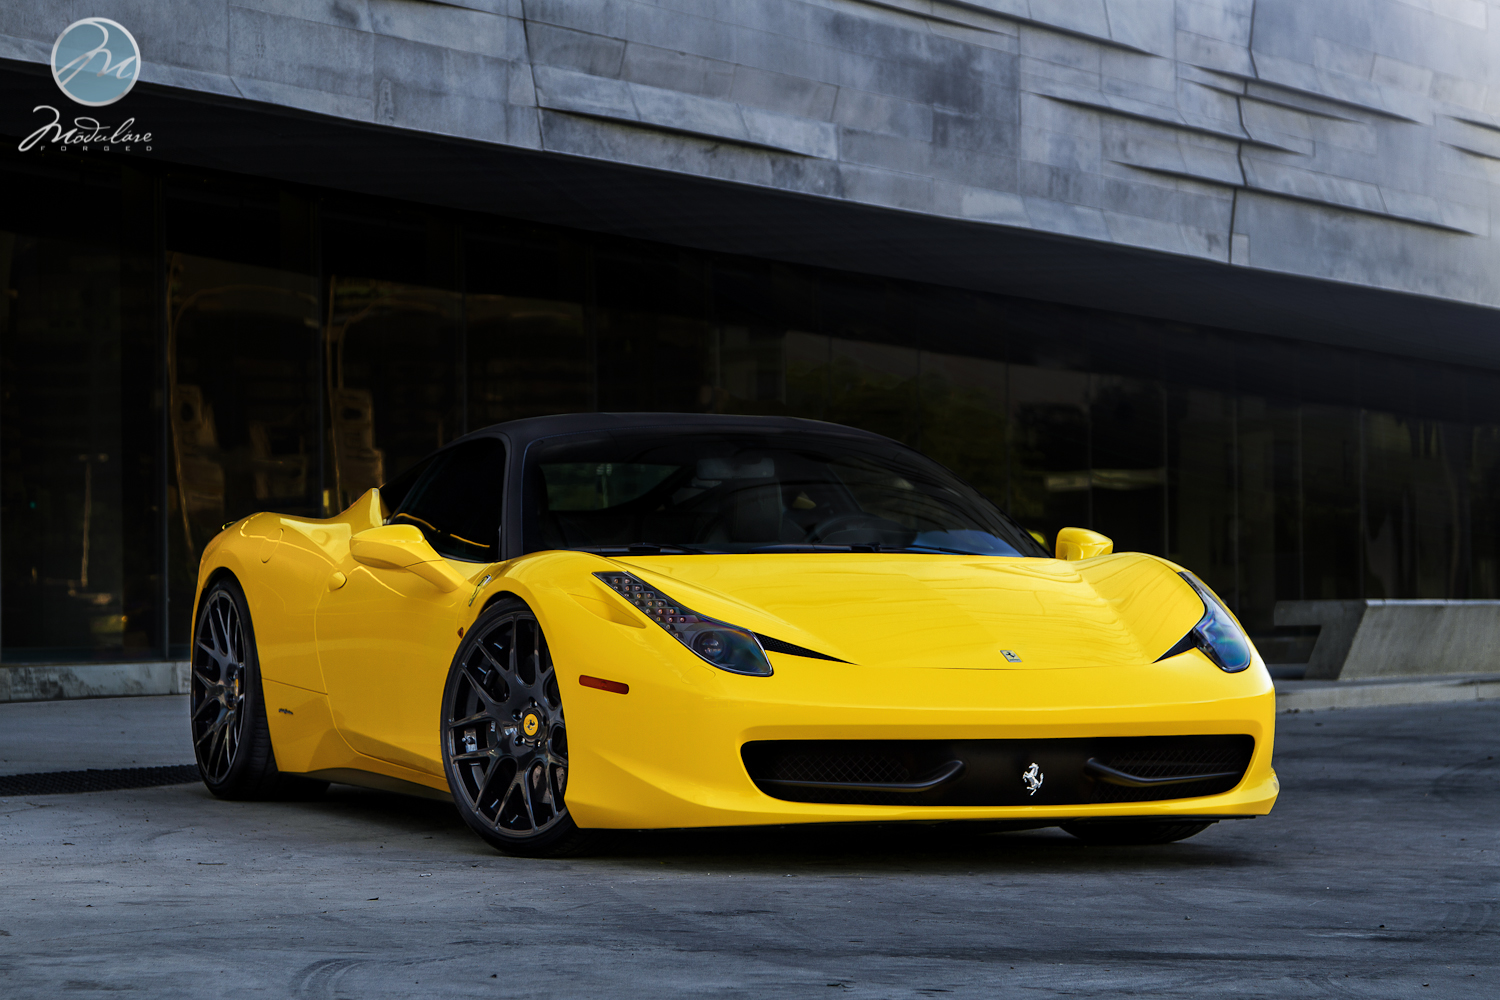 ferrari 458 italia custom wheels modulare b1 21x9 0 et. Black Bedroom Furniture Sets. Home Design Ideas